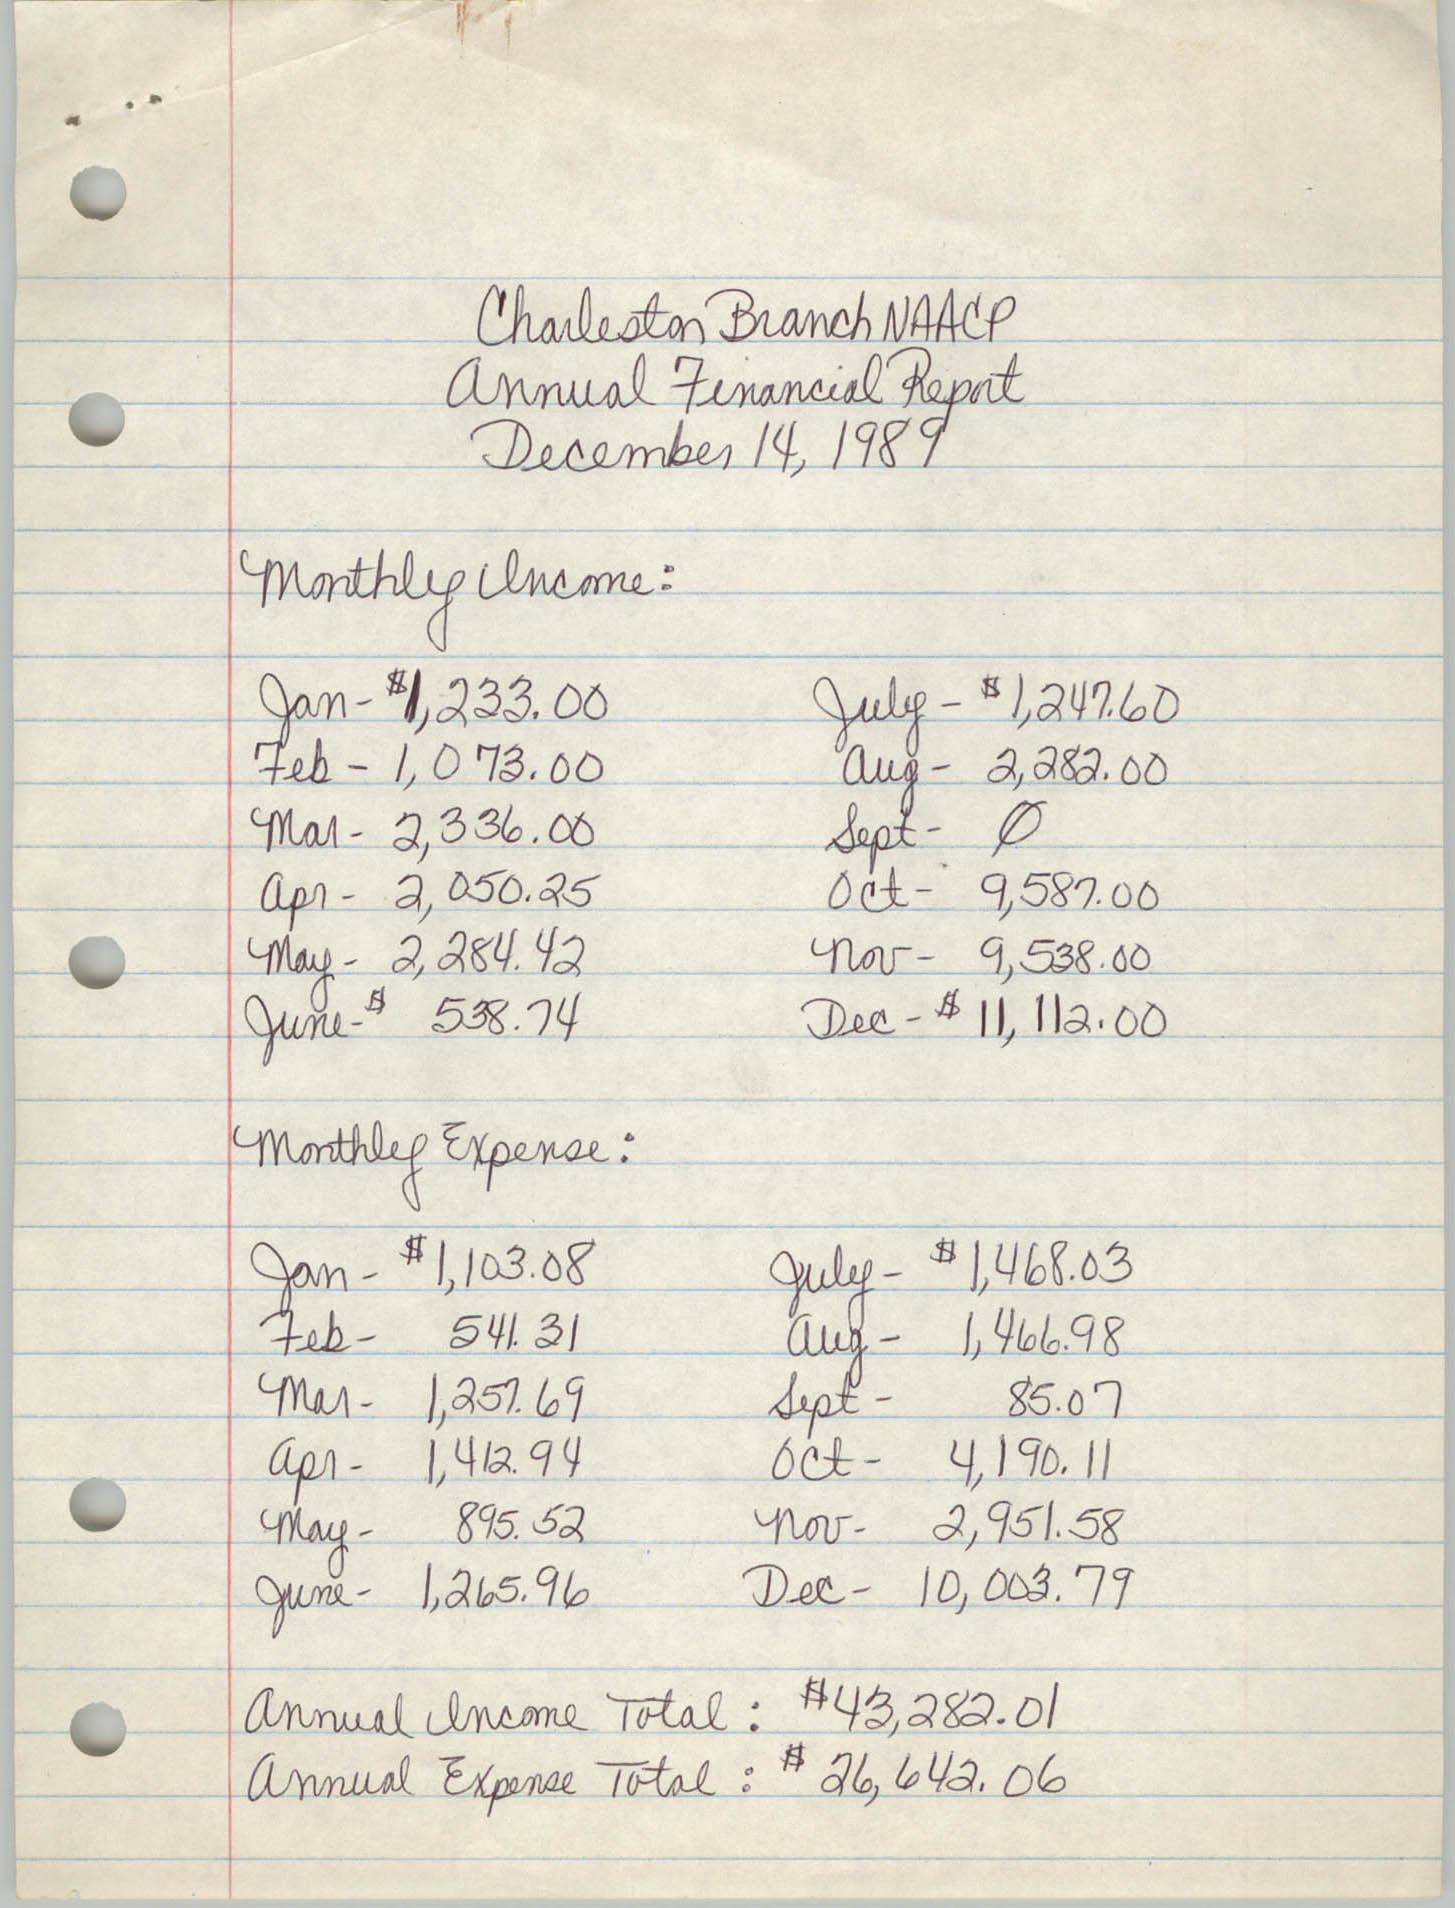 Annual Financial Report, Charleston Branch of the NAACP, December 14, 1989